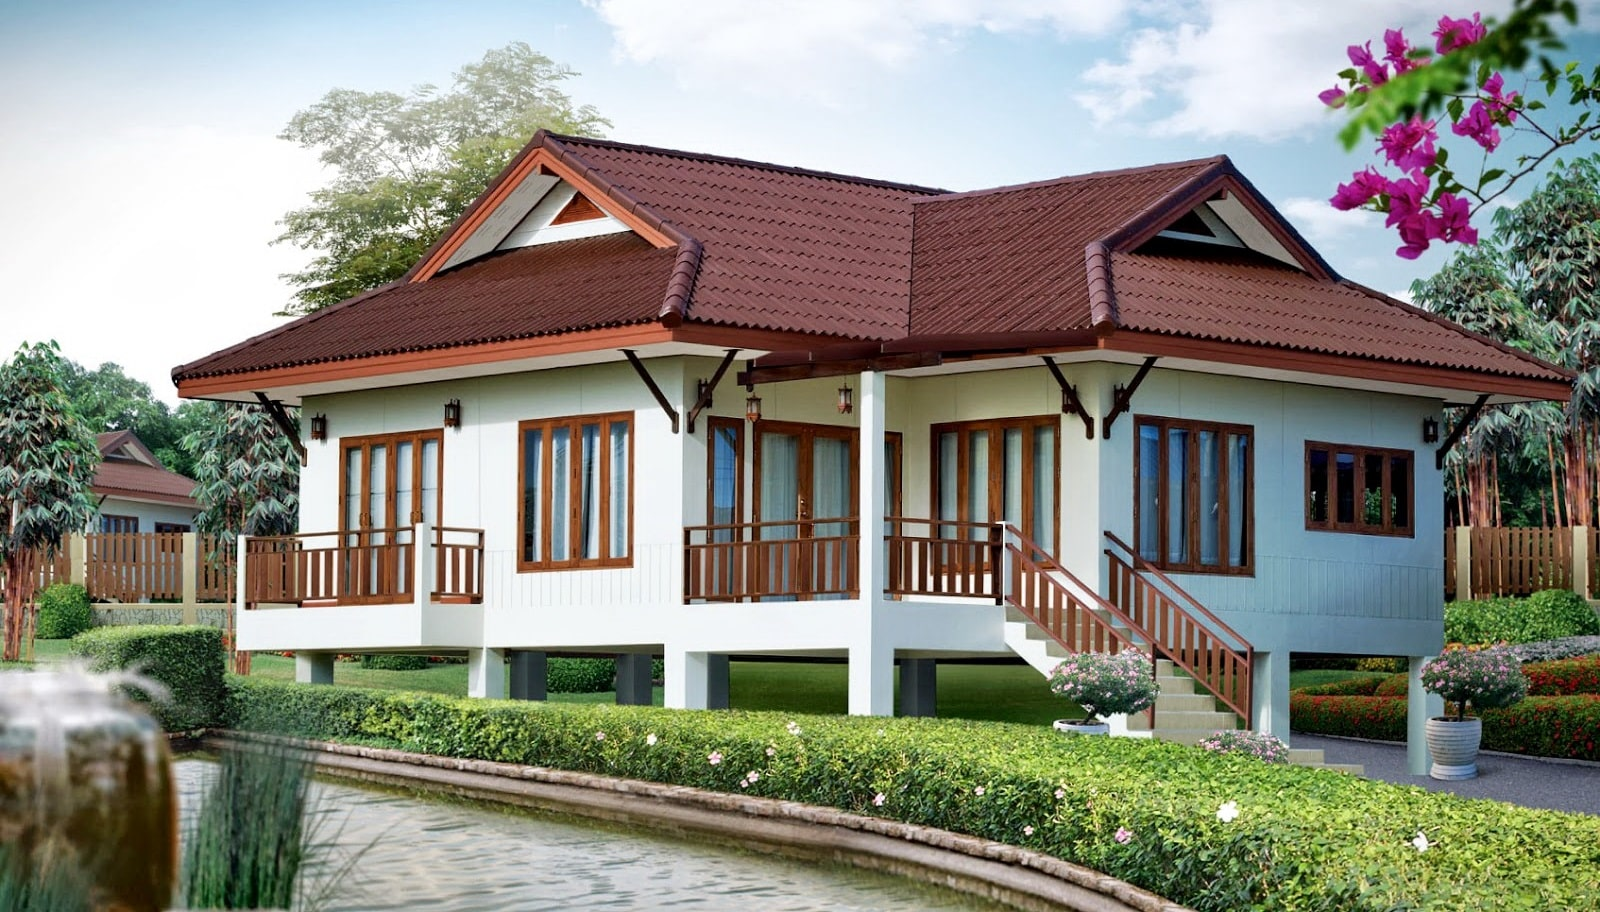 Introducing the modern Thai style house.